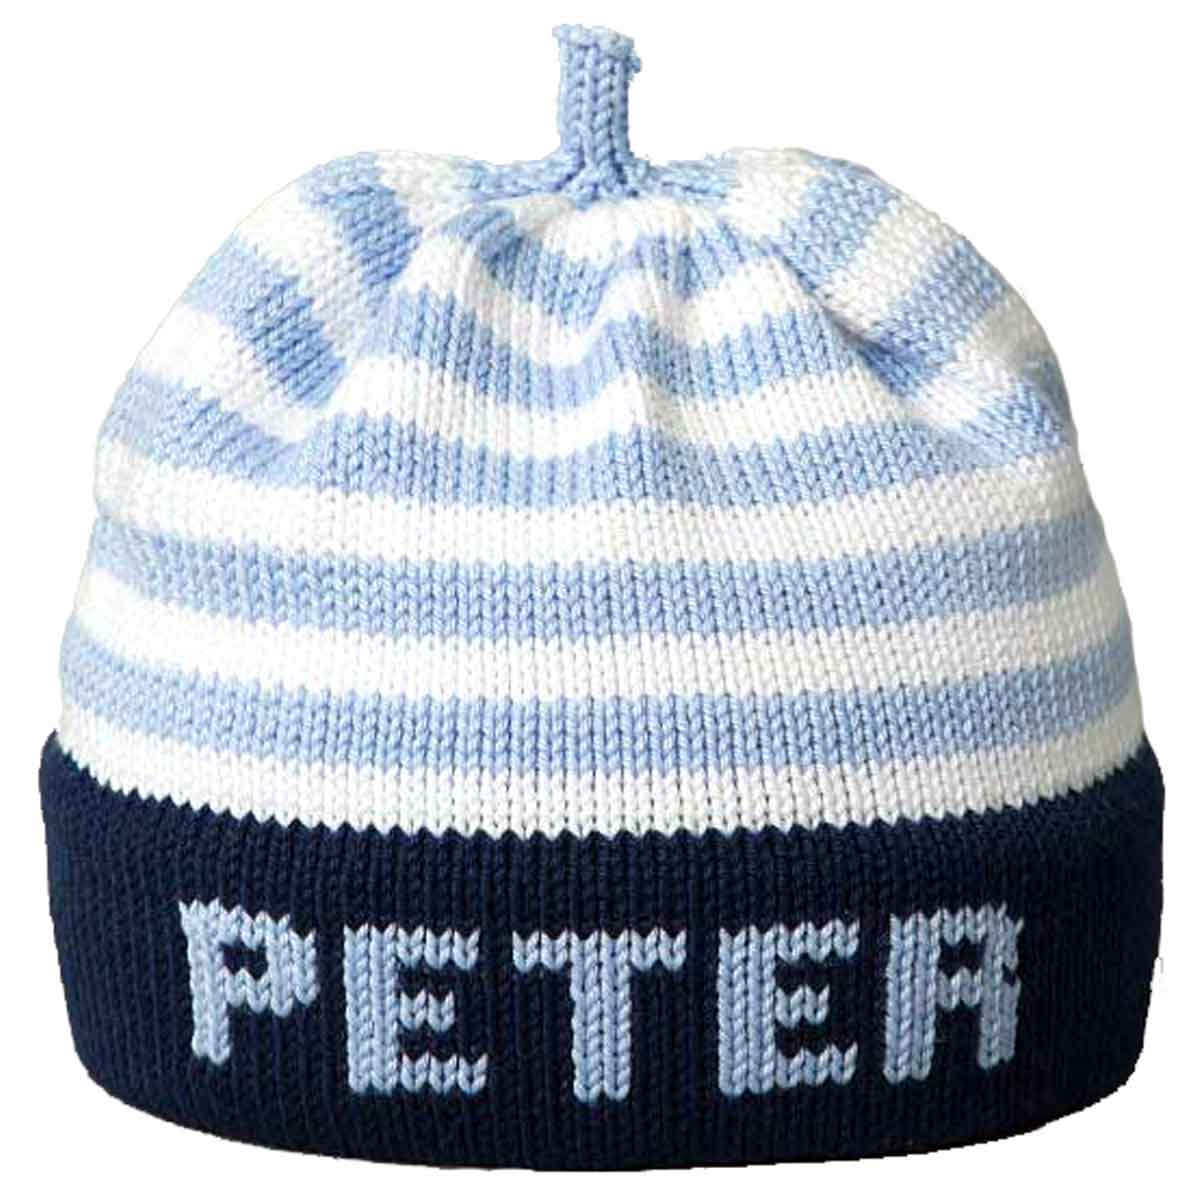 Personalized Knit Hat - Blue Stripe Navy Band - Margareta Horn Design 3ead7890c53